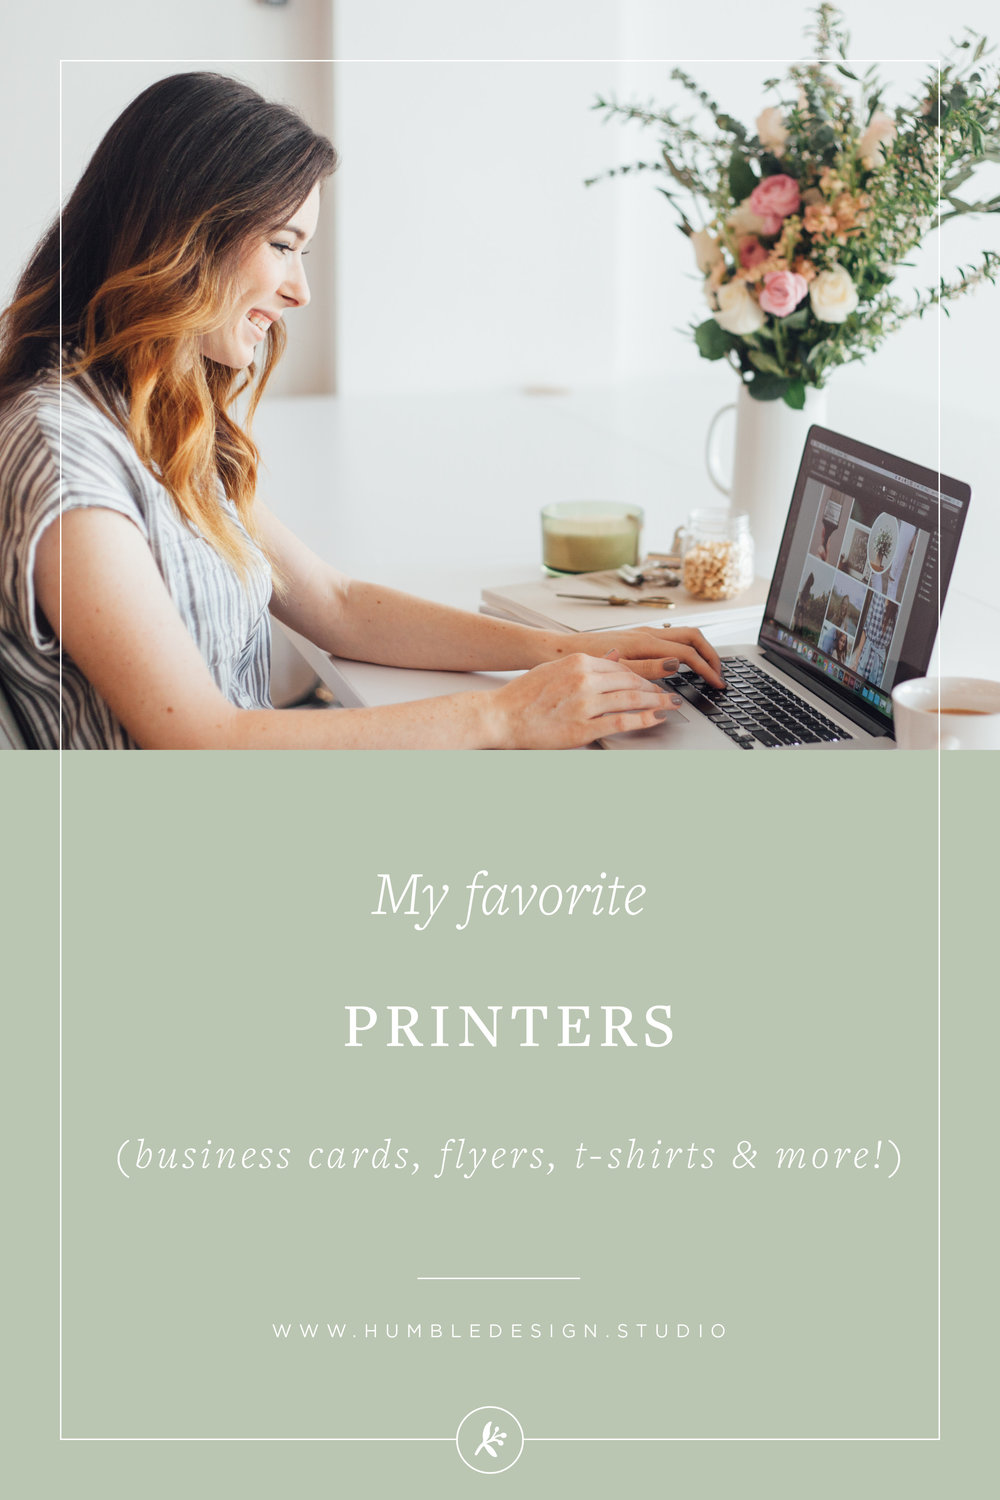 My favorite printers for business cards, flyers, t-shirts and more